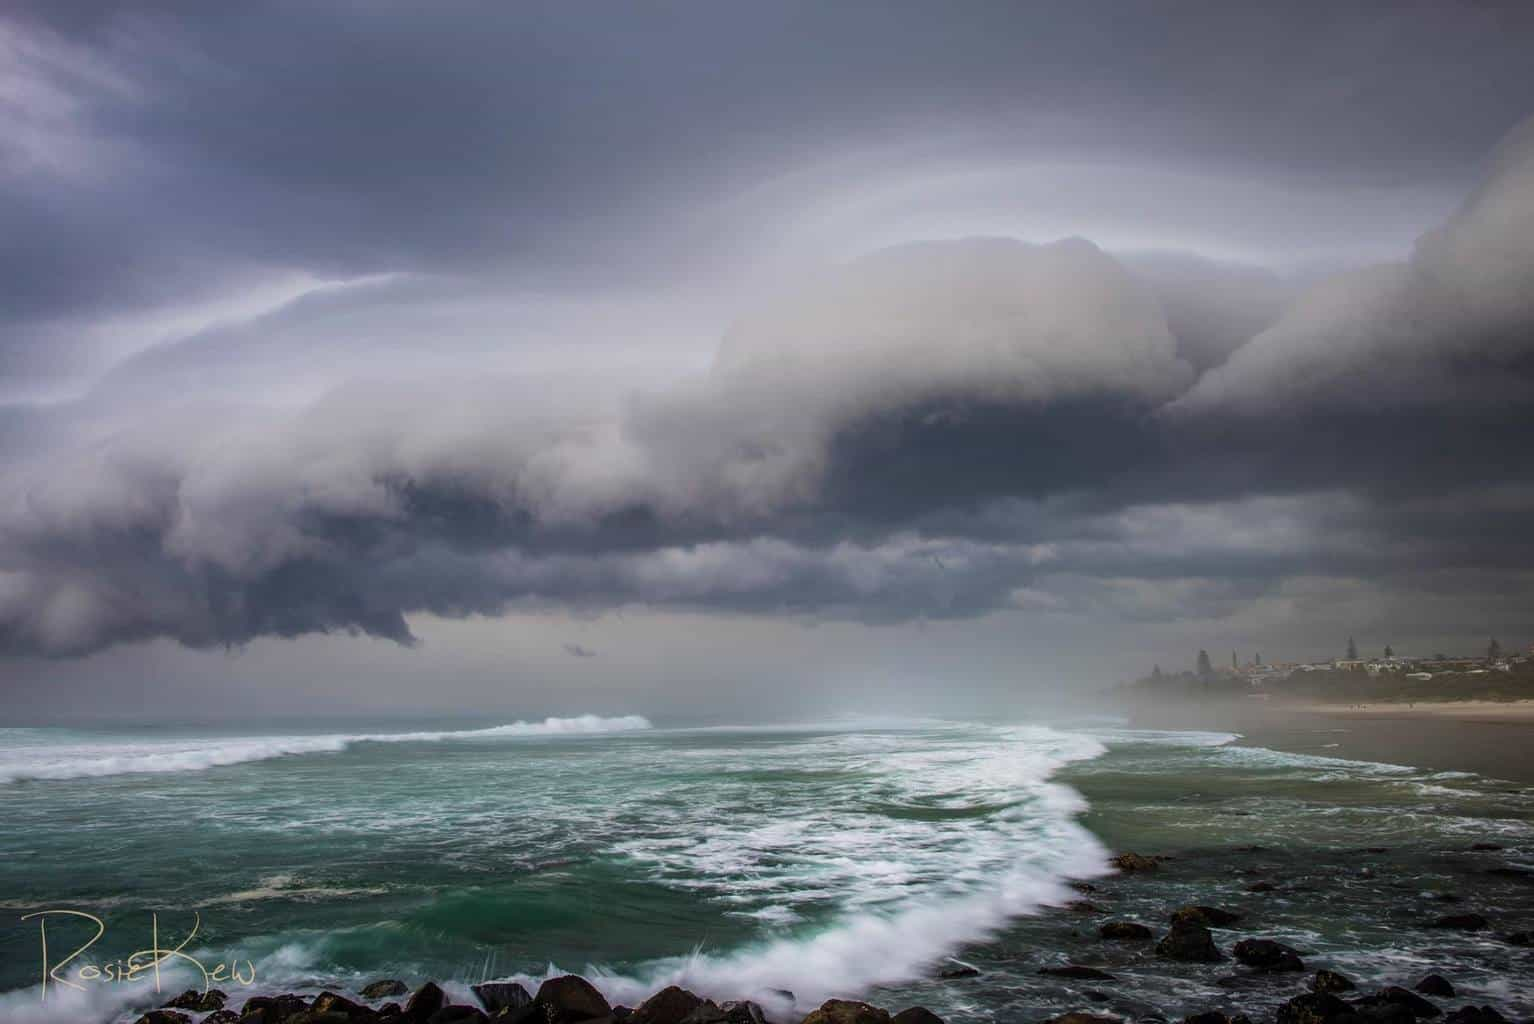 Shelf cloud with cinema curtain structure a week ago. Ballina Northern NSW. This shelf cloud was riding a southerly change and not everywhere saw a Shelf cloud but it was very good of it to happen where I was set up!